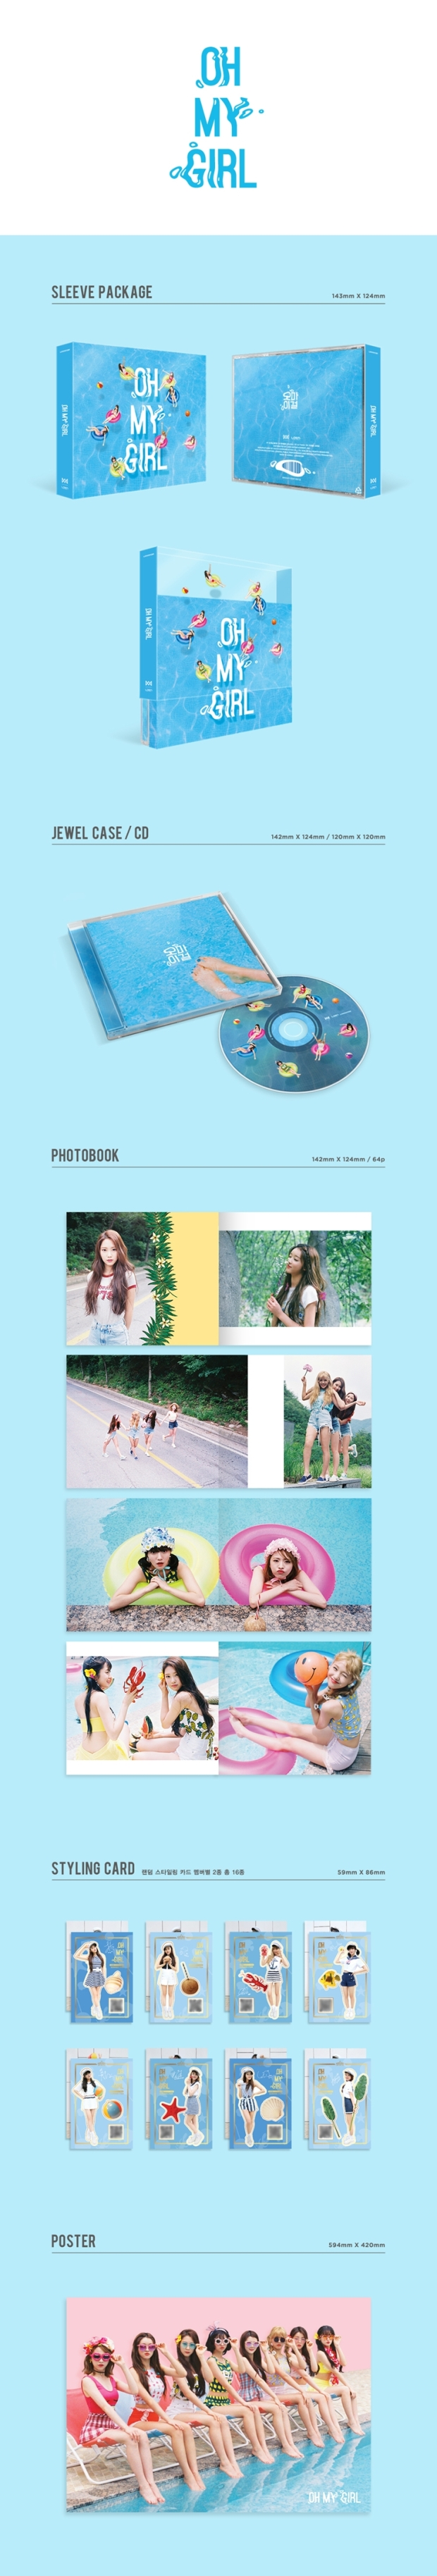 OH MY GIRL SUMMER SPECIAL ALBUM